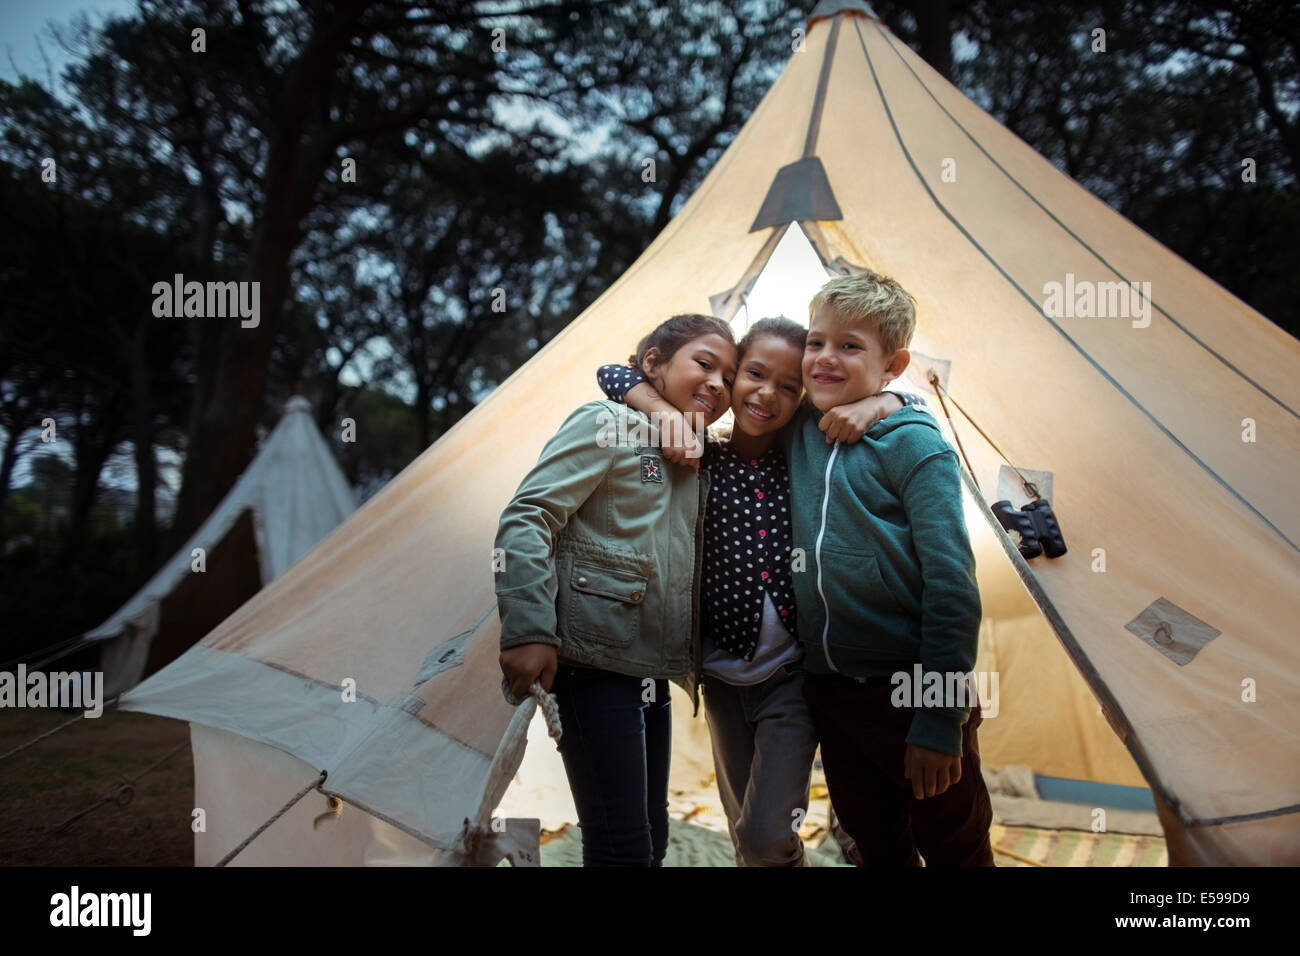 Children hugging by teepee at campsite - Stock Image